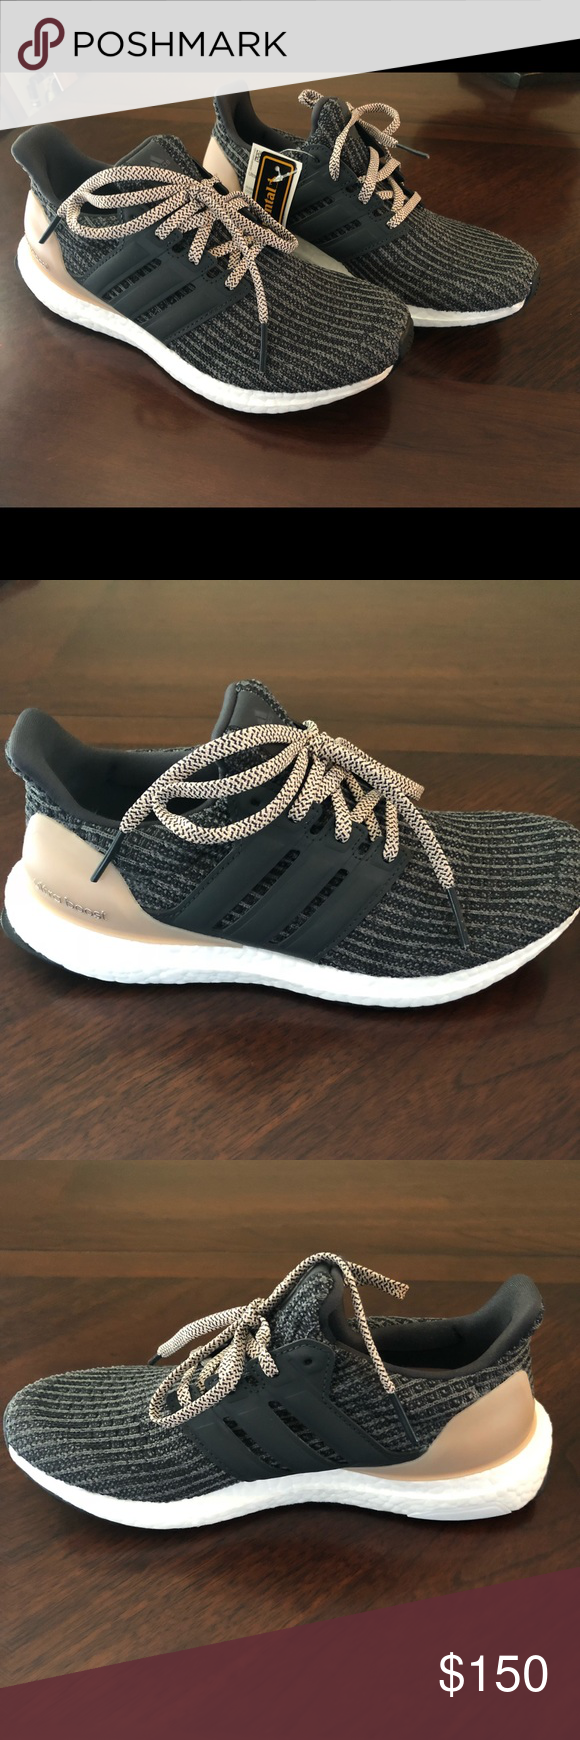 395f976dfbdf4 Adidas UltraBoost Item  Adidas UltaBoost 4.0 Item    BB6151 Size  Women s  6.5 Color  grey five carbon ash pearl Conditions  Brand New  Never Worn  with Tags ...